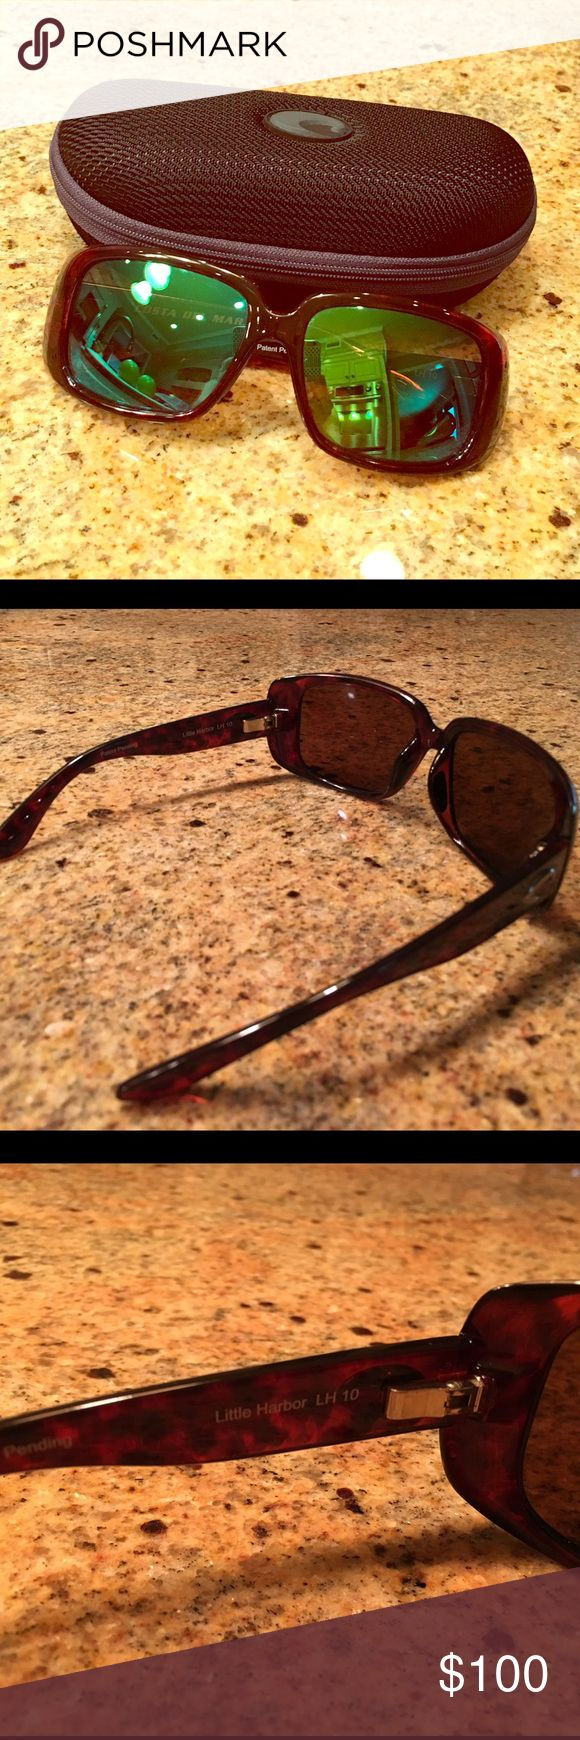 Costa Del Mar Little Harbor Polarized Sunglasses Gently used, case kept Costa Del Mar ladies sunglasses. Little Harbor style. Brown Tortoise with green mirror lenses. No defects. Original owner. Costa Del Mar Accessories Sunglasses